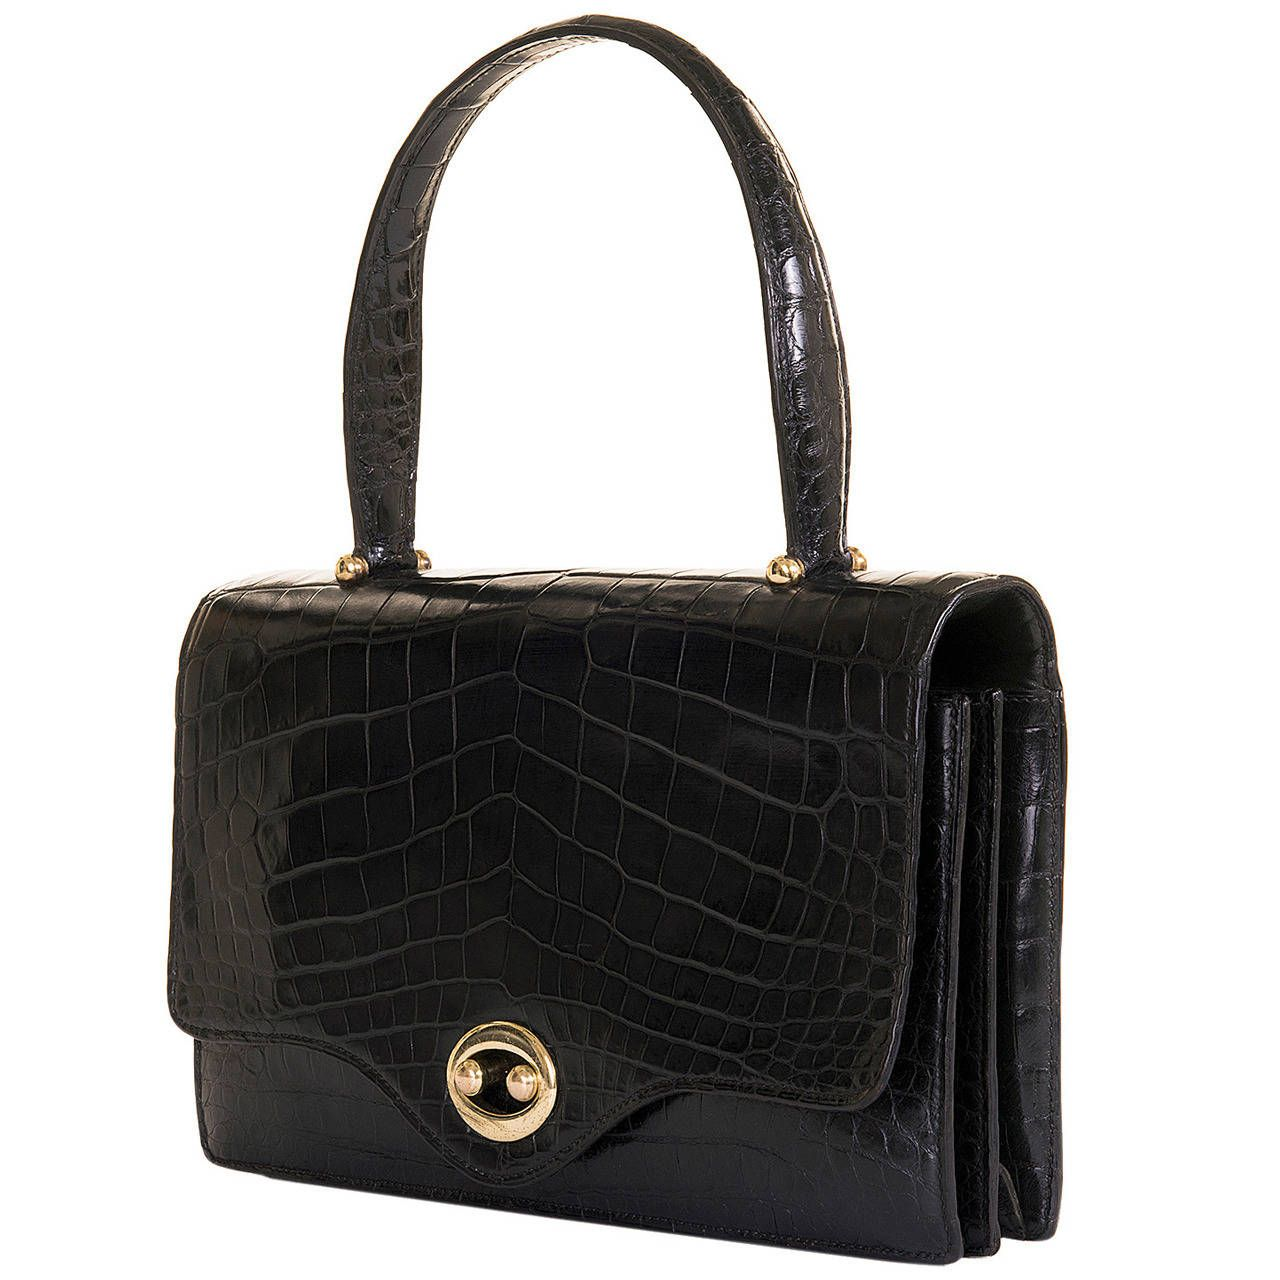 a very rare vintage hermes 26cm black crocodile 39 sac boutonniere 39 bag aspire to acquire. Black Bedroom Furniture Sets. Home Design Ideas